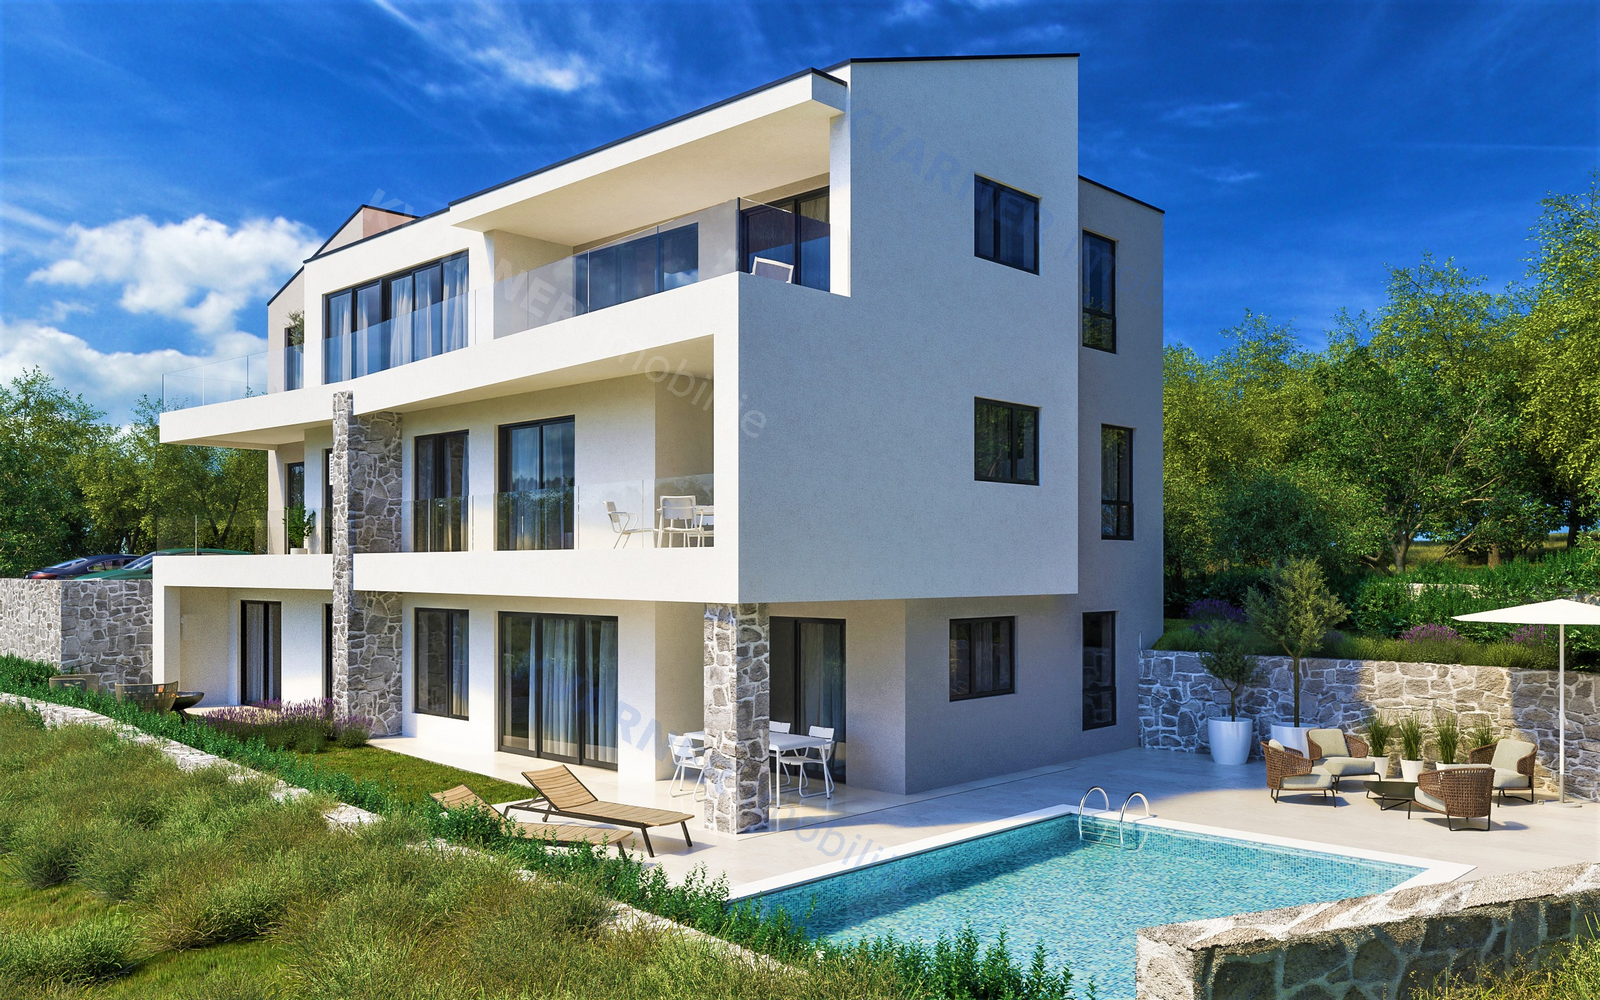 TOP OFFER! Modern apartment - ground floor with pool - 30 m from the beach!